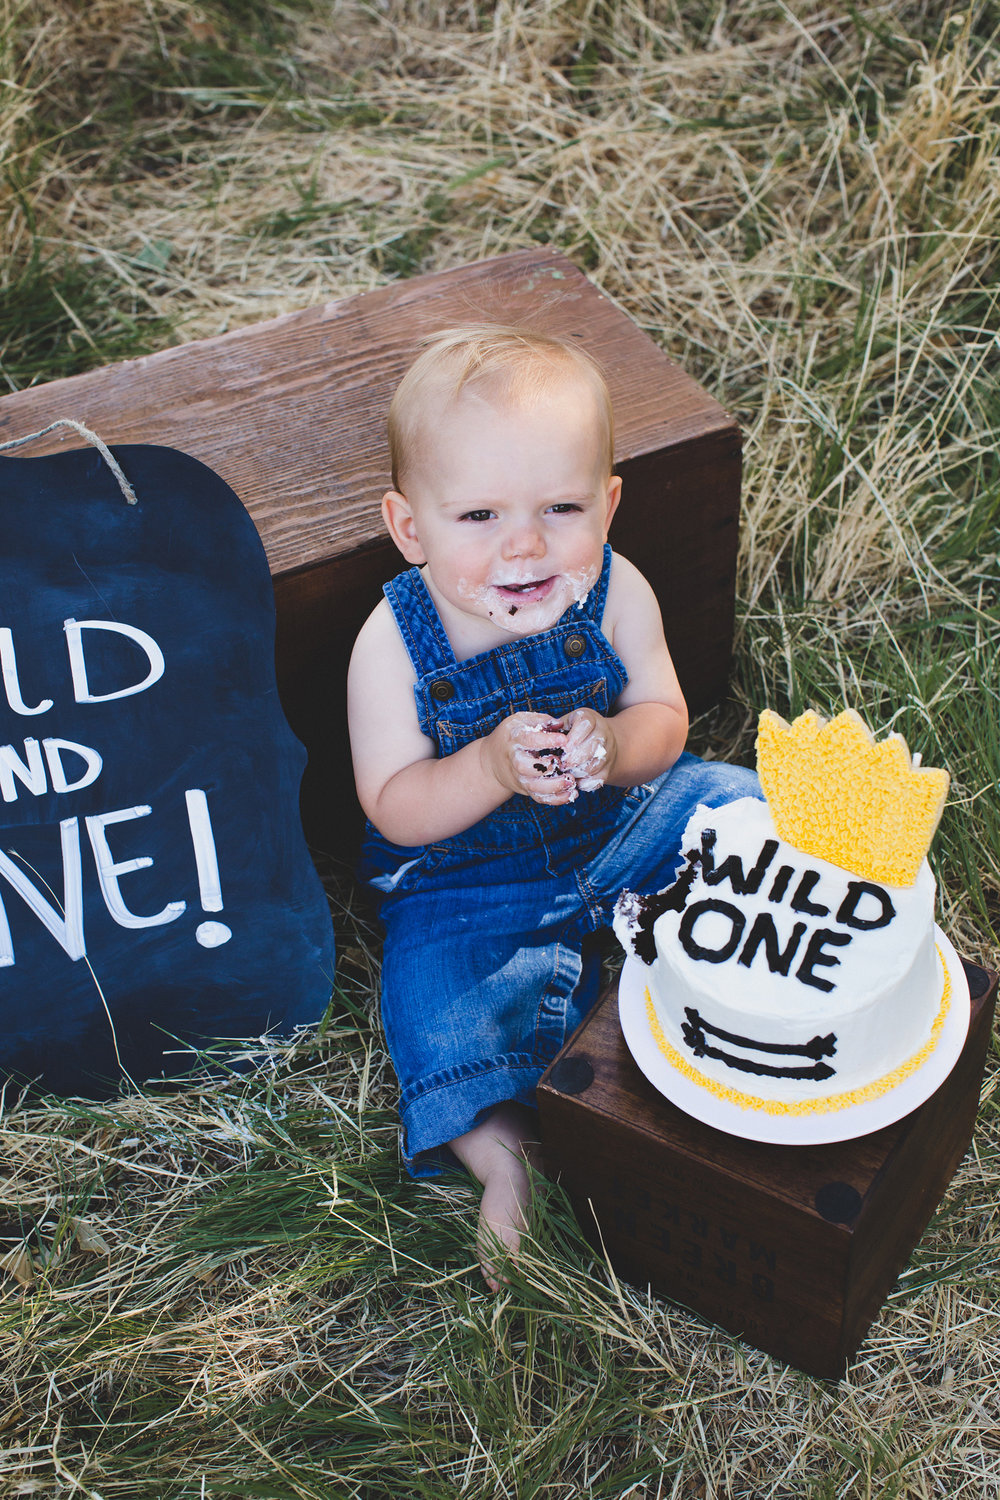 Kennewick family photos_Kennewick children photos_one year old photos_cake smash_baby photos_outdoor photo session_where the wild things are_Jordan Edens Photography_JEP_9